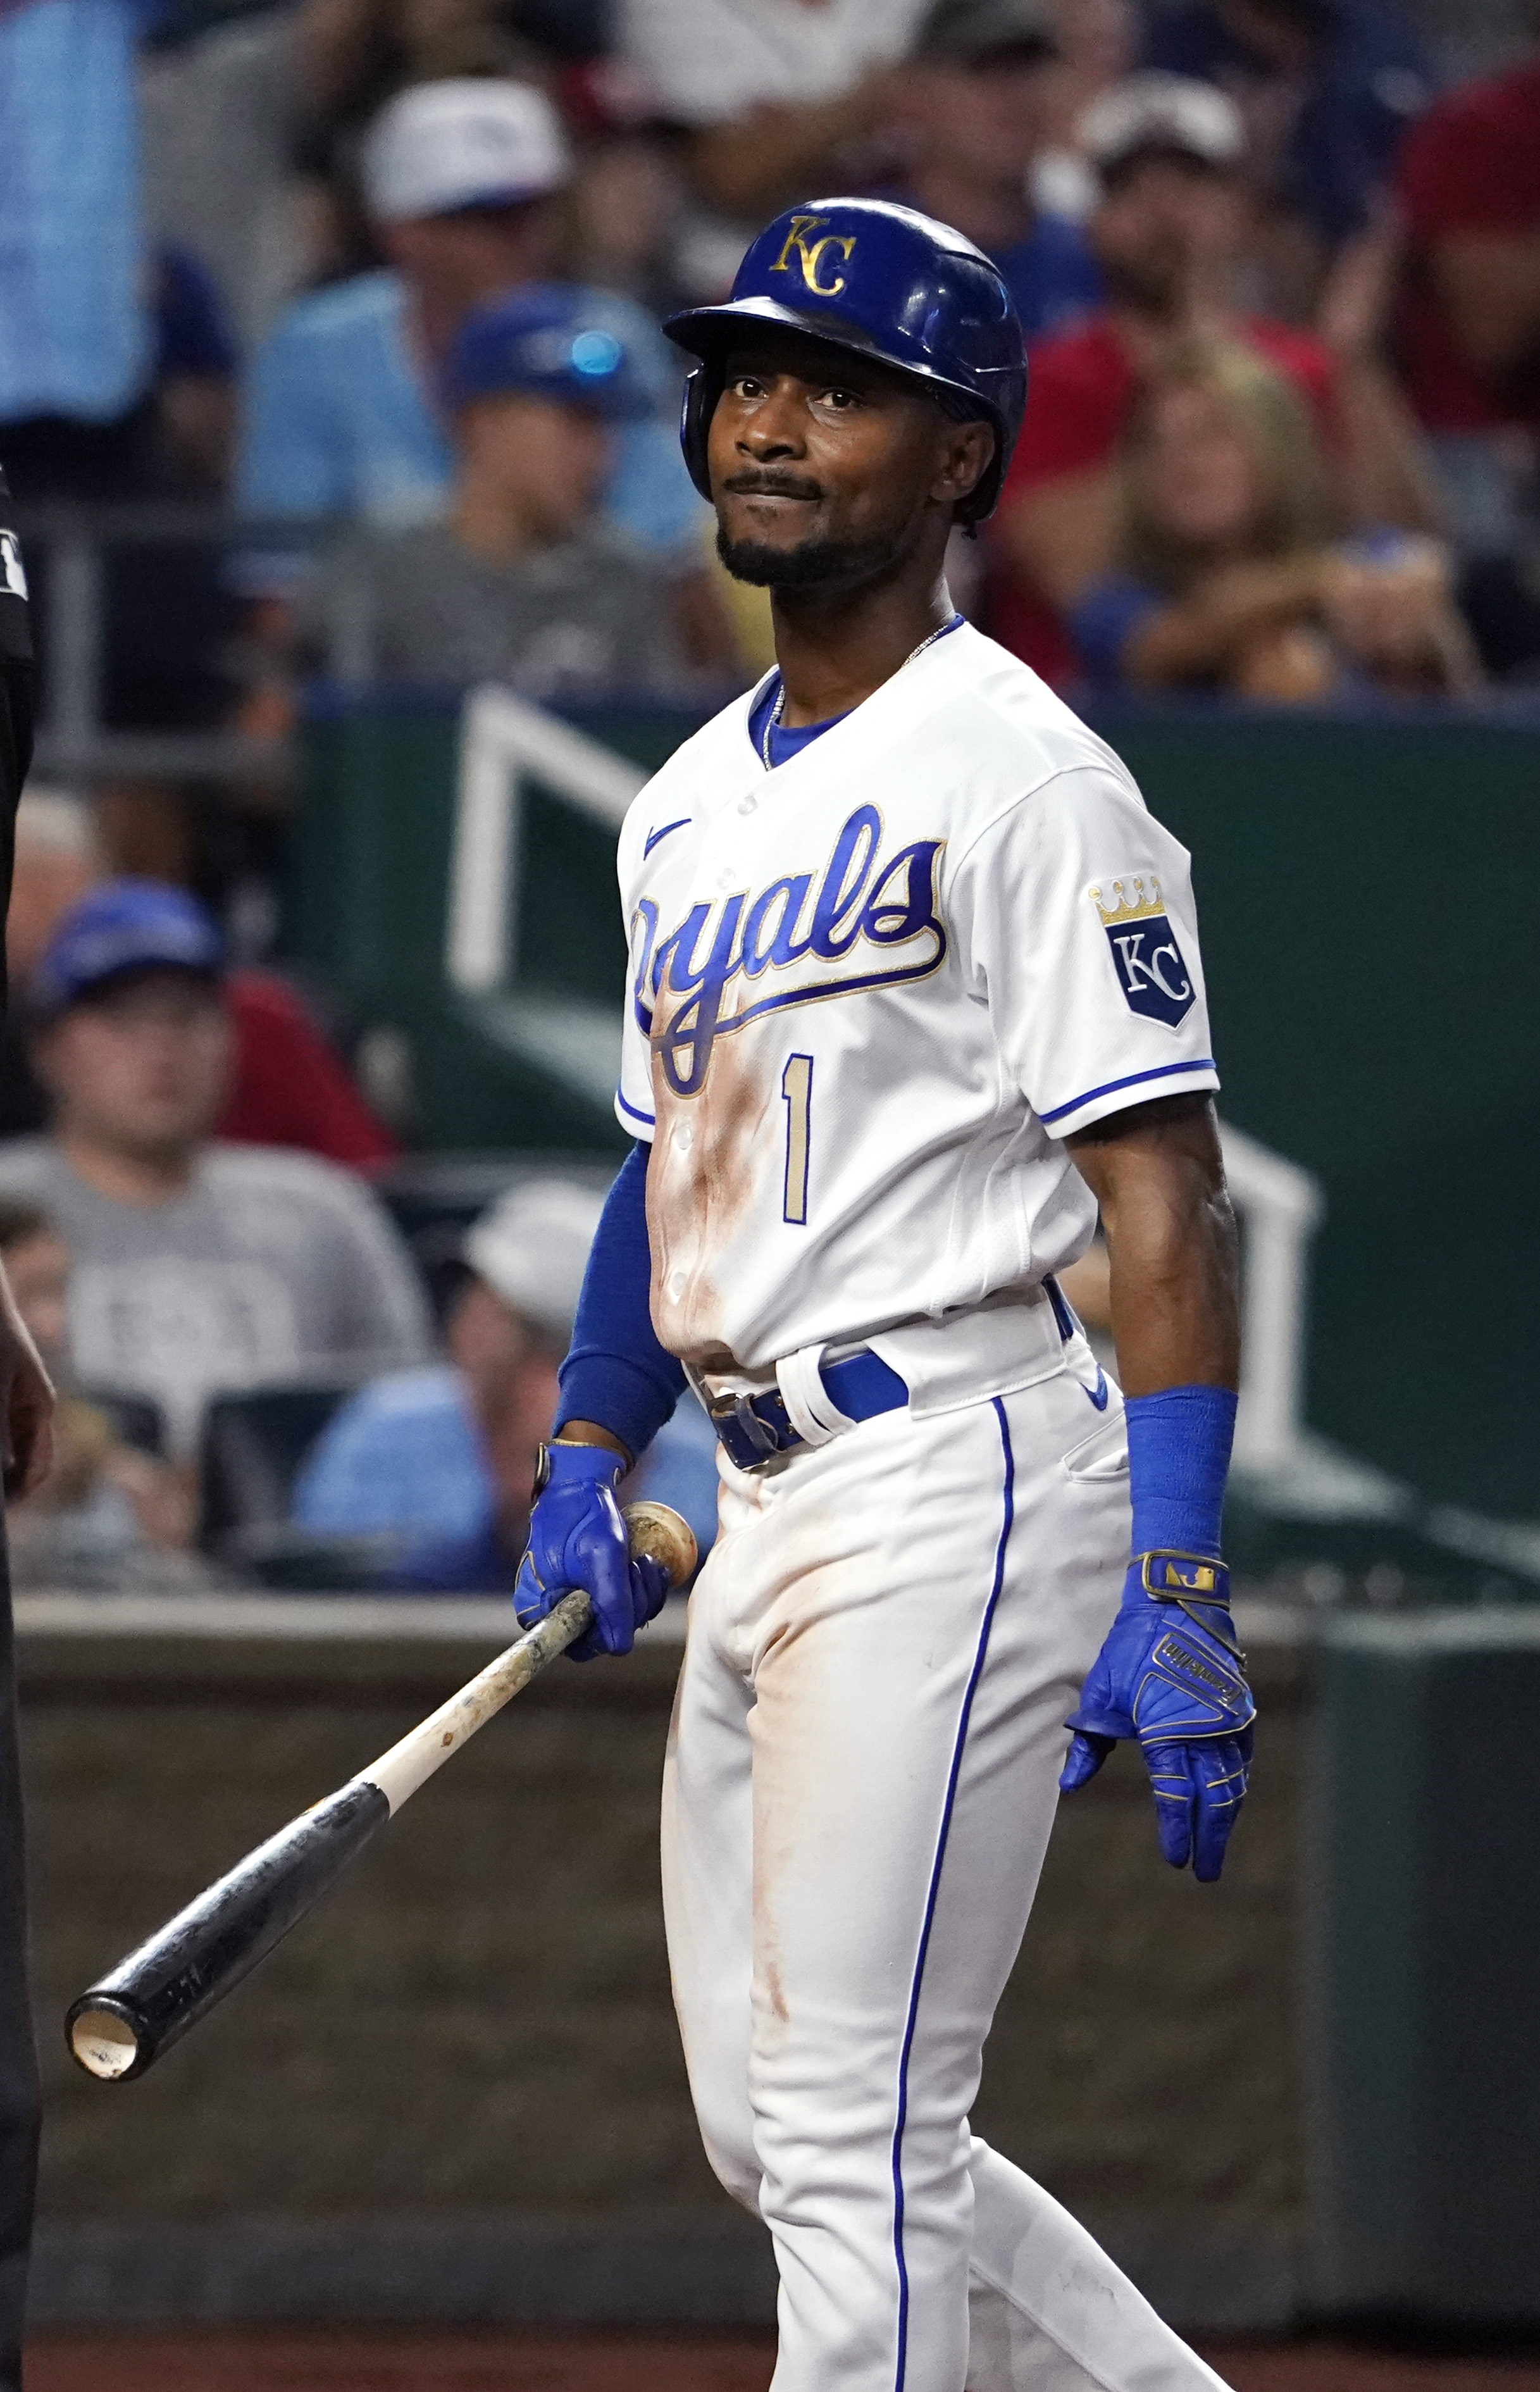 Jarrod Dyson doesn't seem any happier than we are